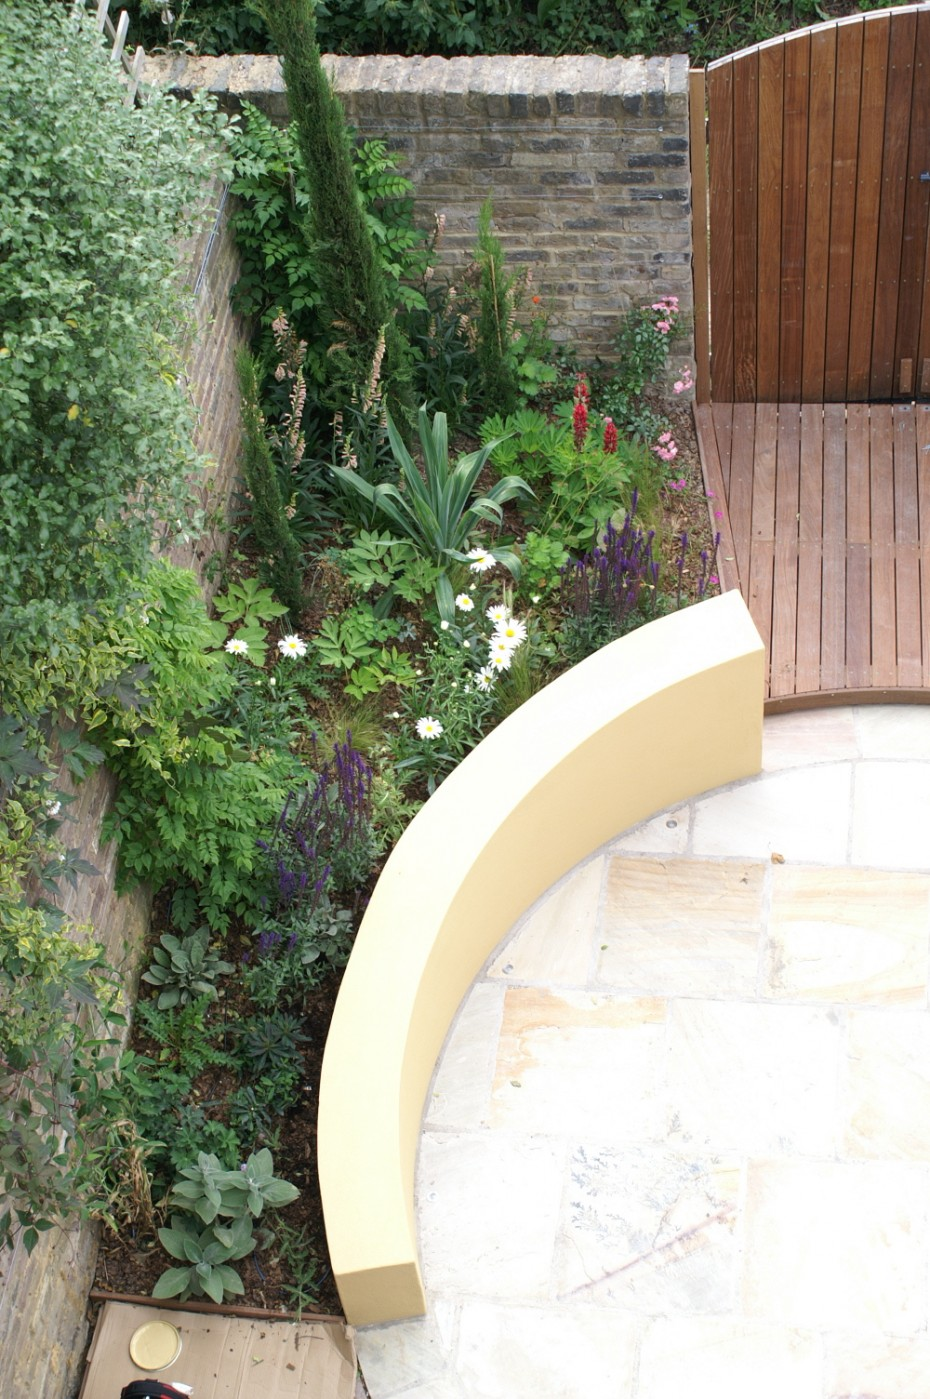 Coutyard garden with decking and double gates